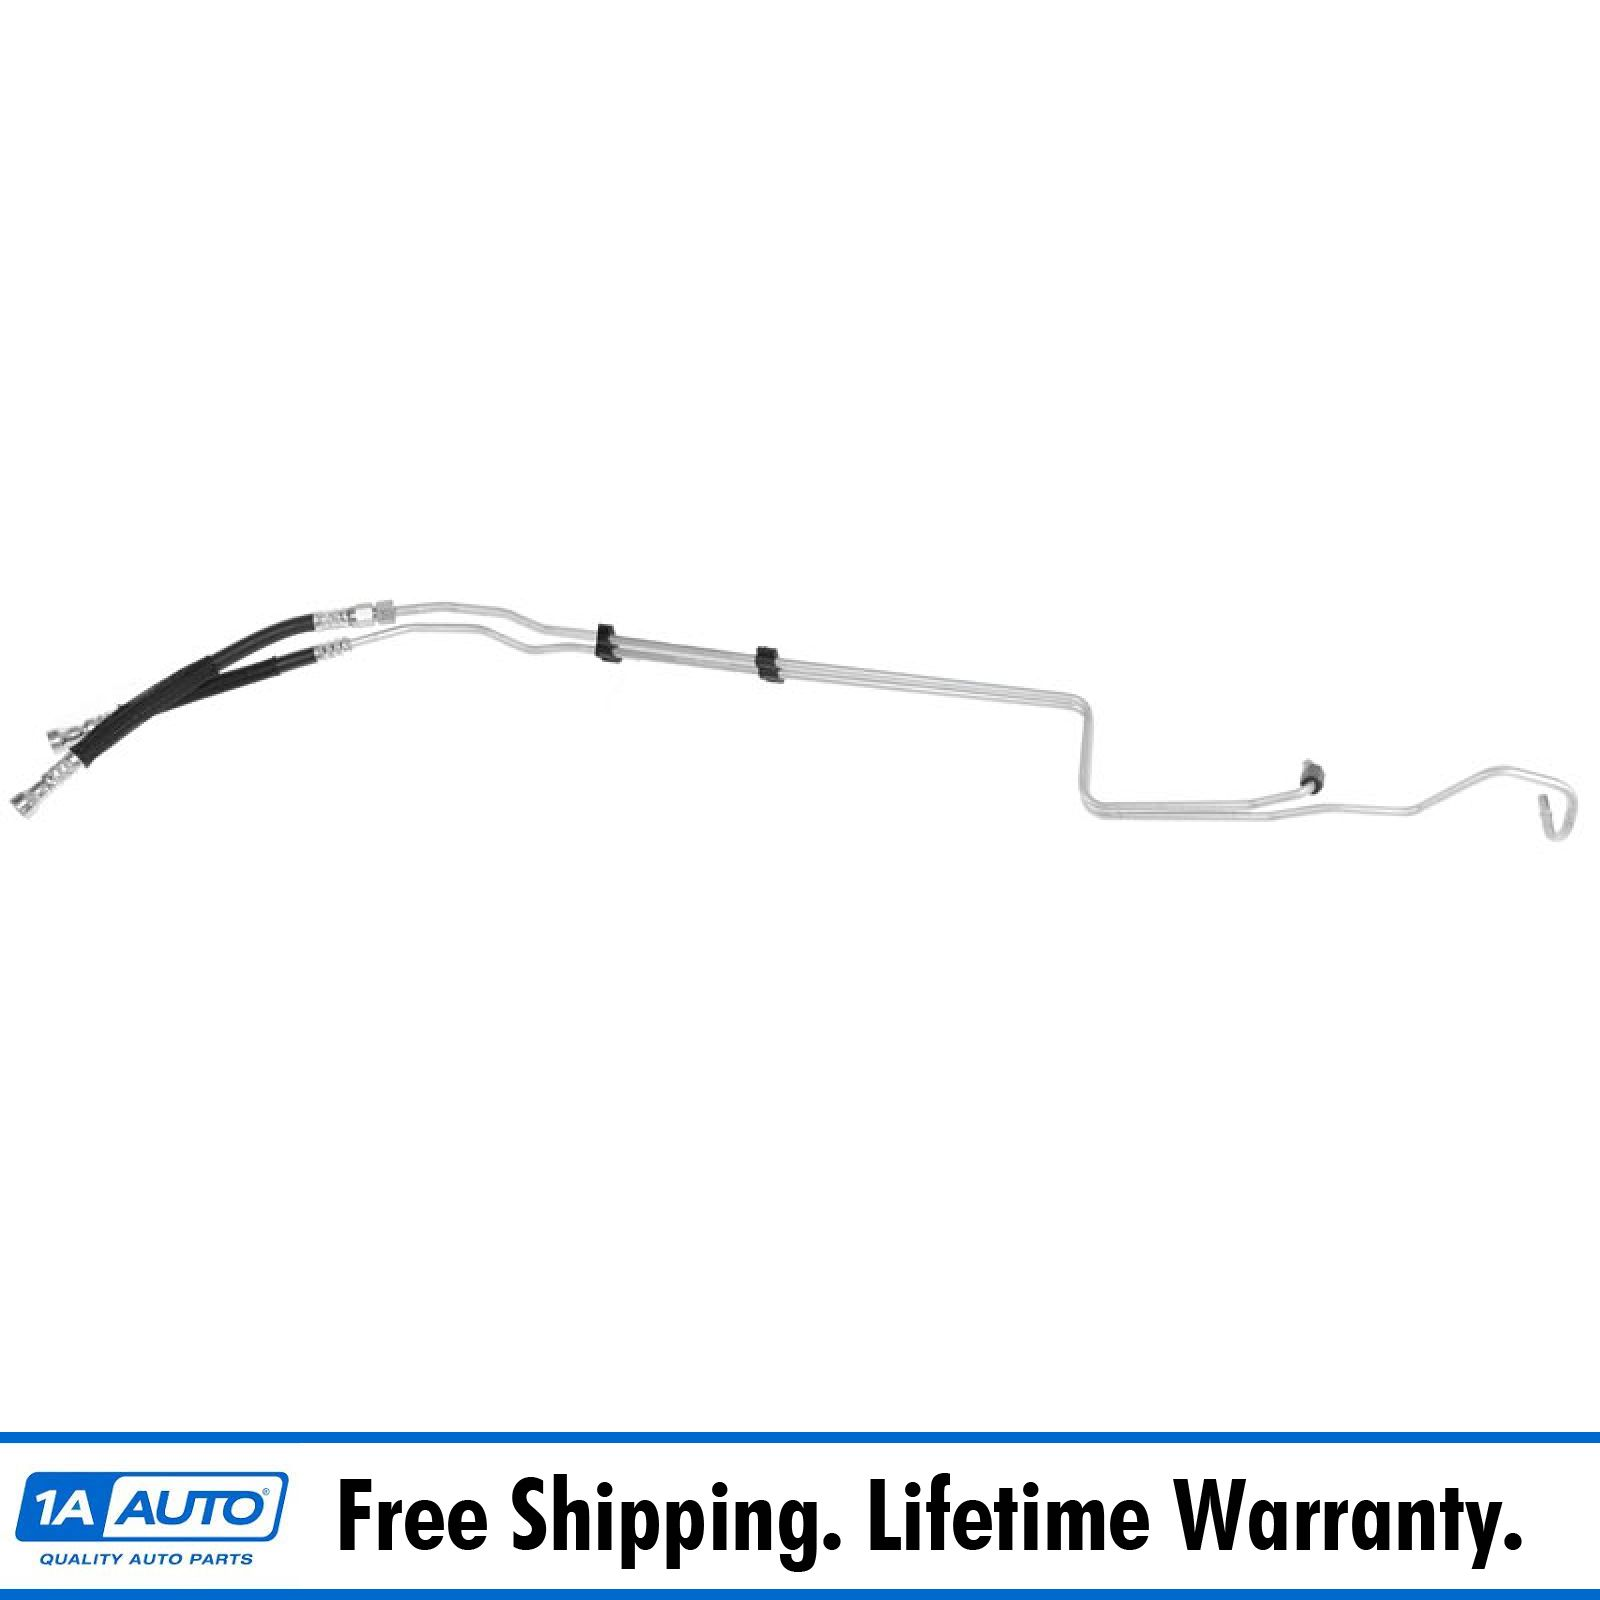 Auto Trans Oil Cooler Hose Assembly Dorman fits 96-97 Jeep Grand Cherokee